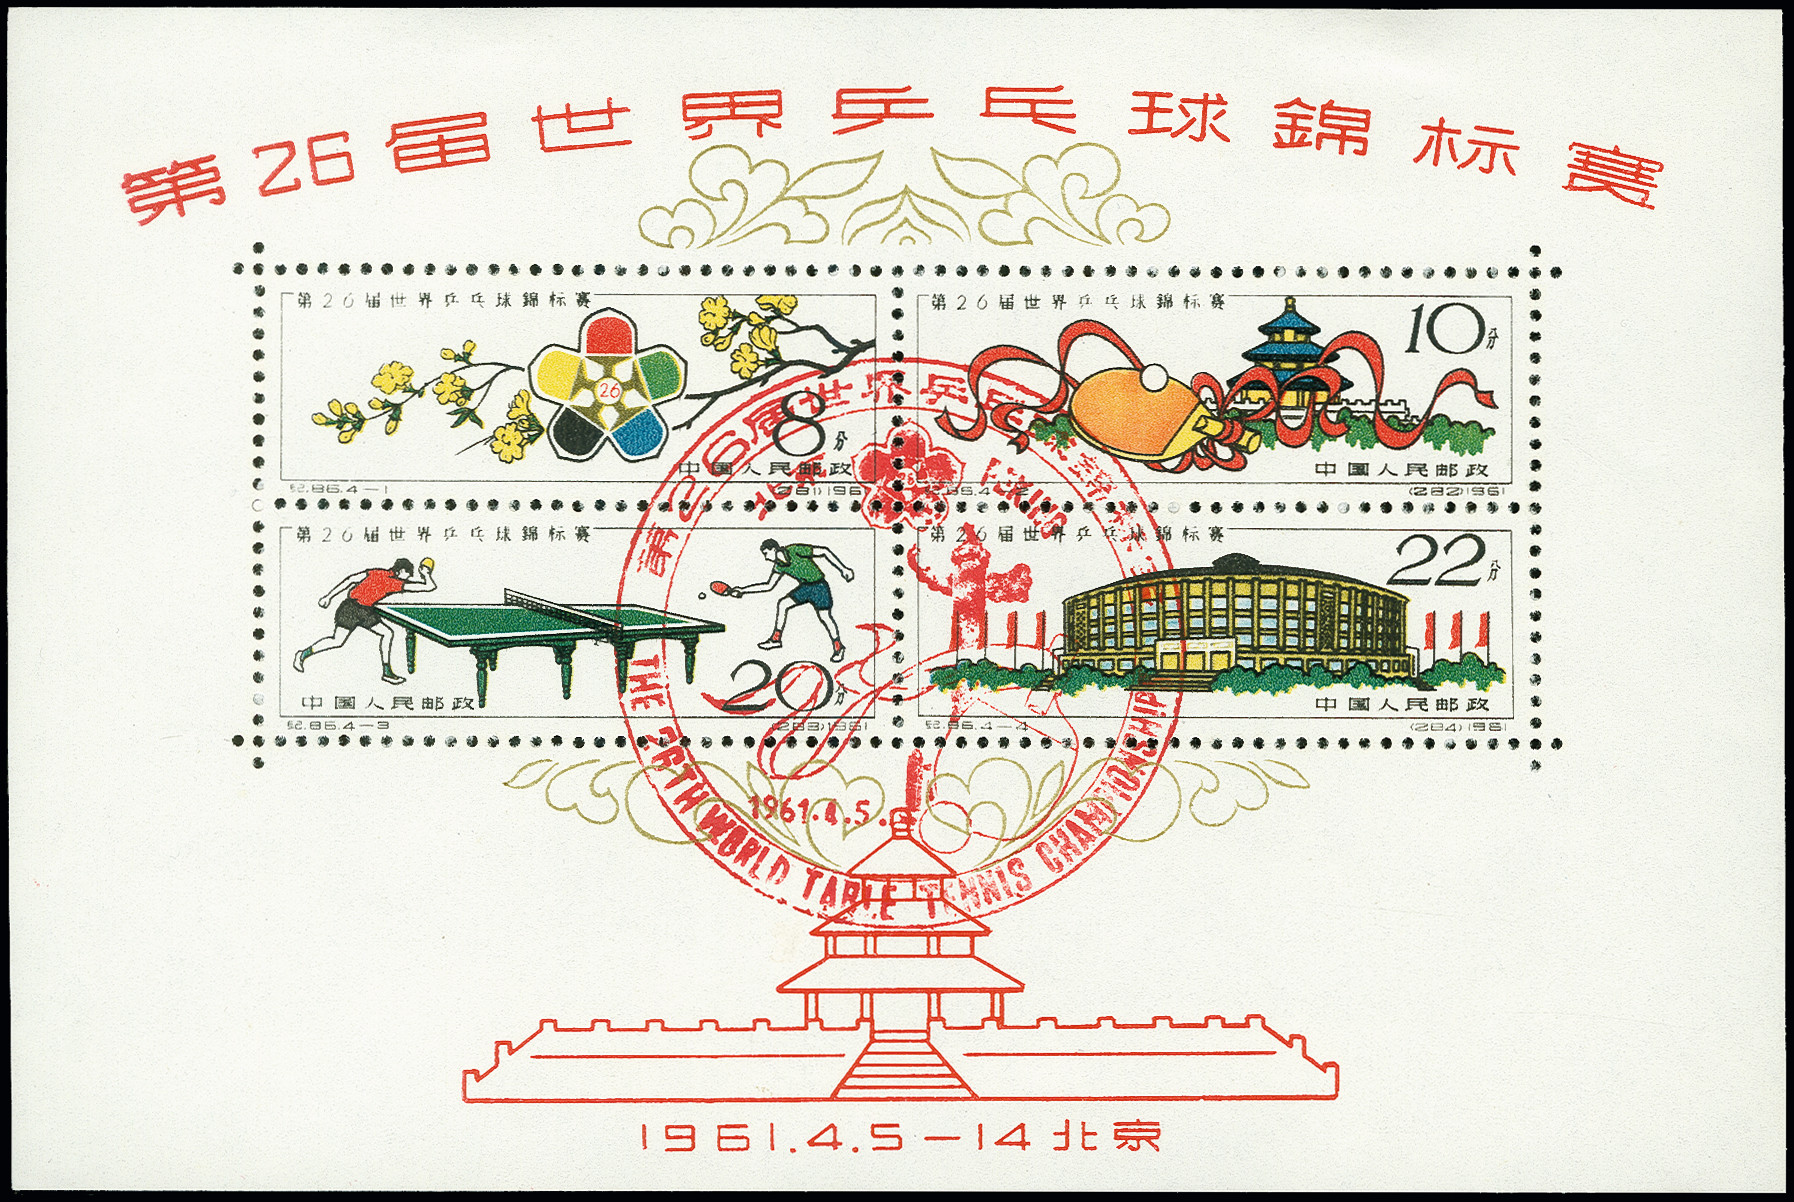 Lot 994 - Overseas People's Republic of China -  Heinrich Koehler Auktionen Auction #367- Day 1